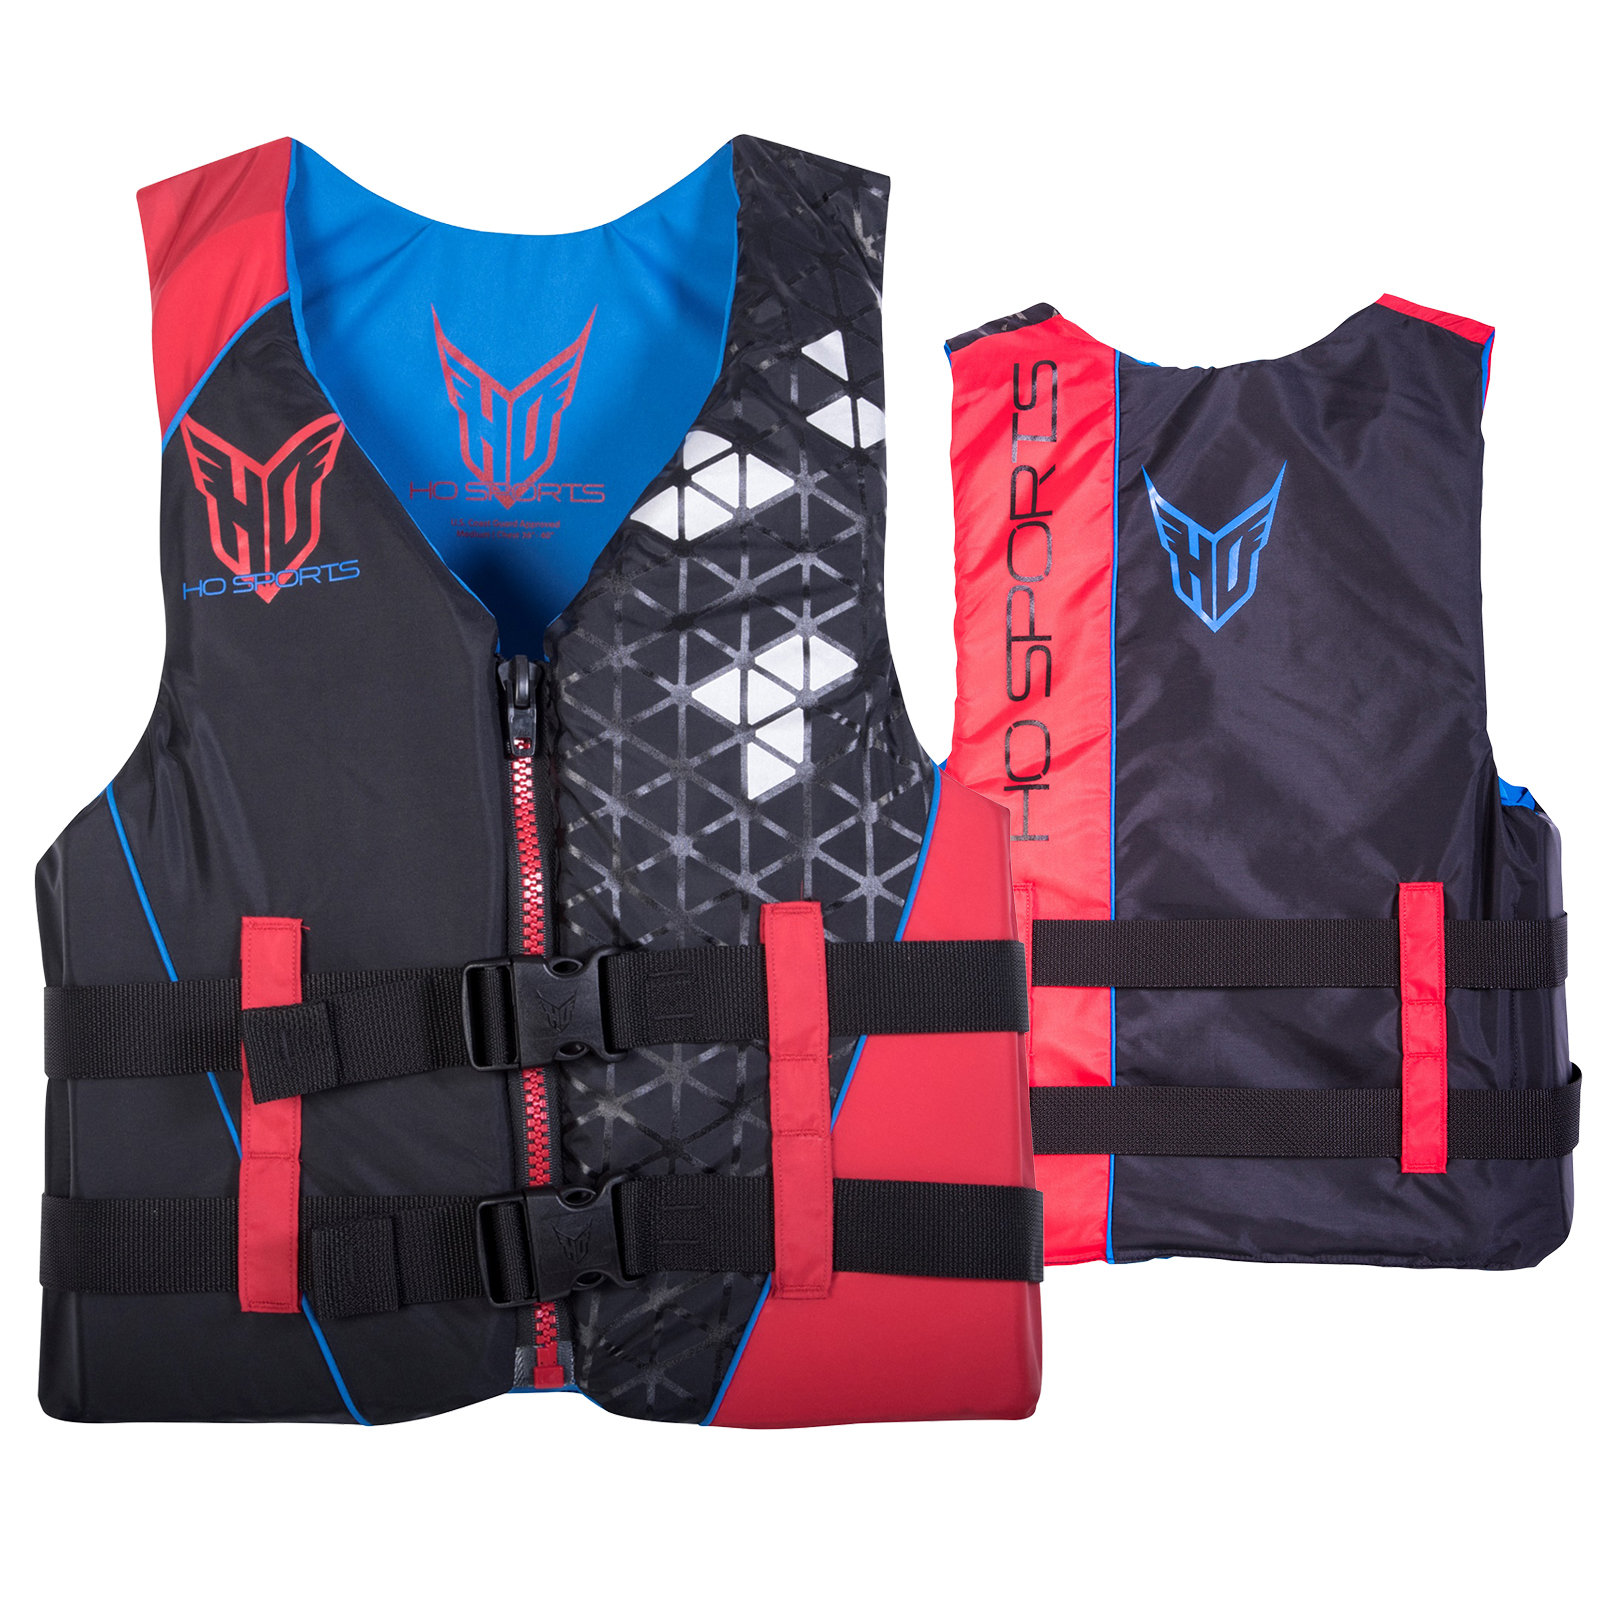 INFINITE LIFE VEST - RED HO SPORTS 2018